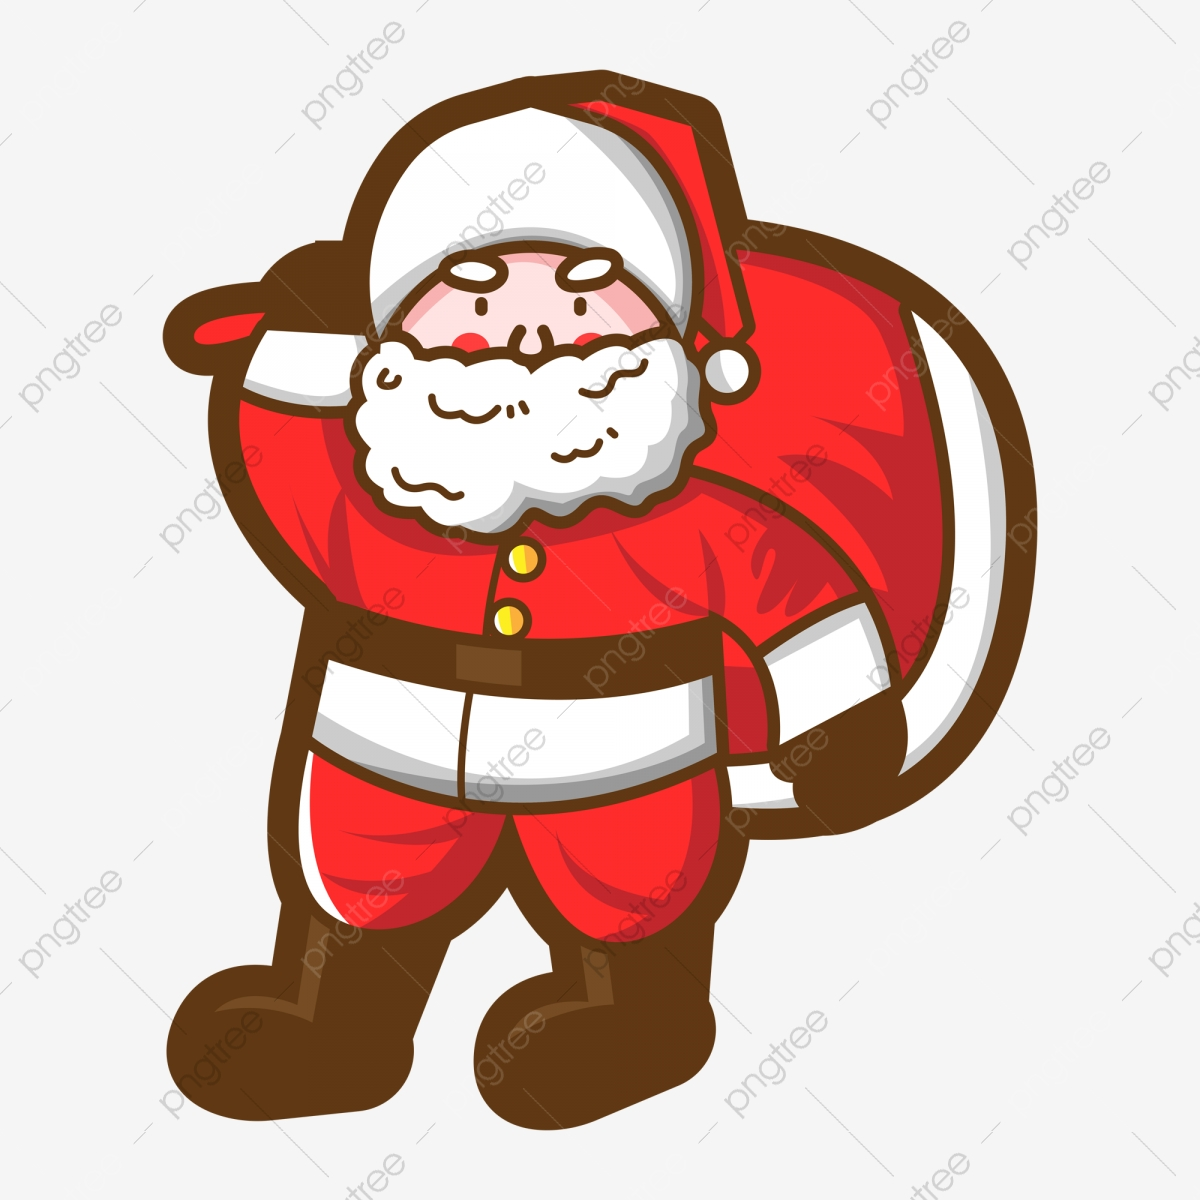 hight resolution of category santa claus